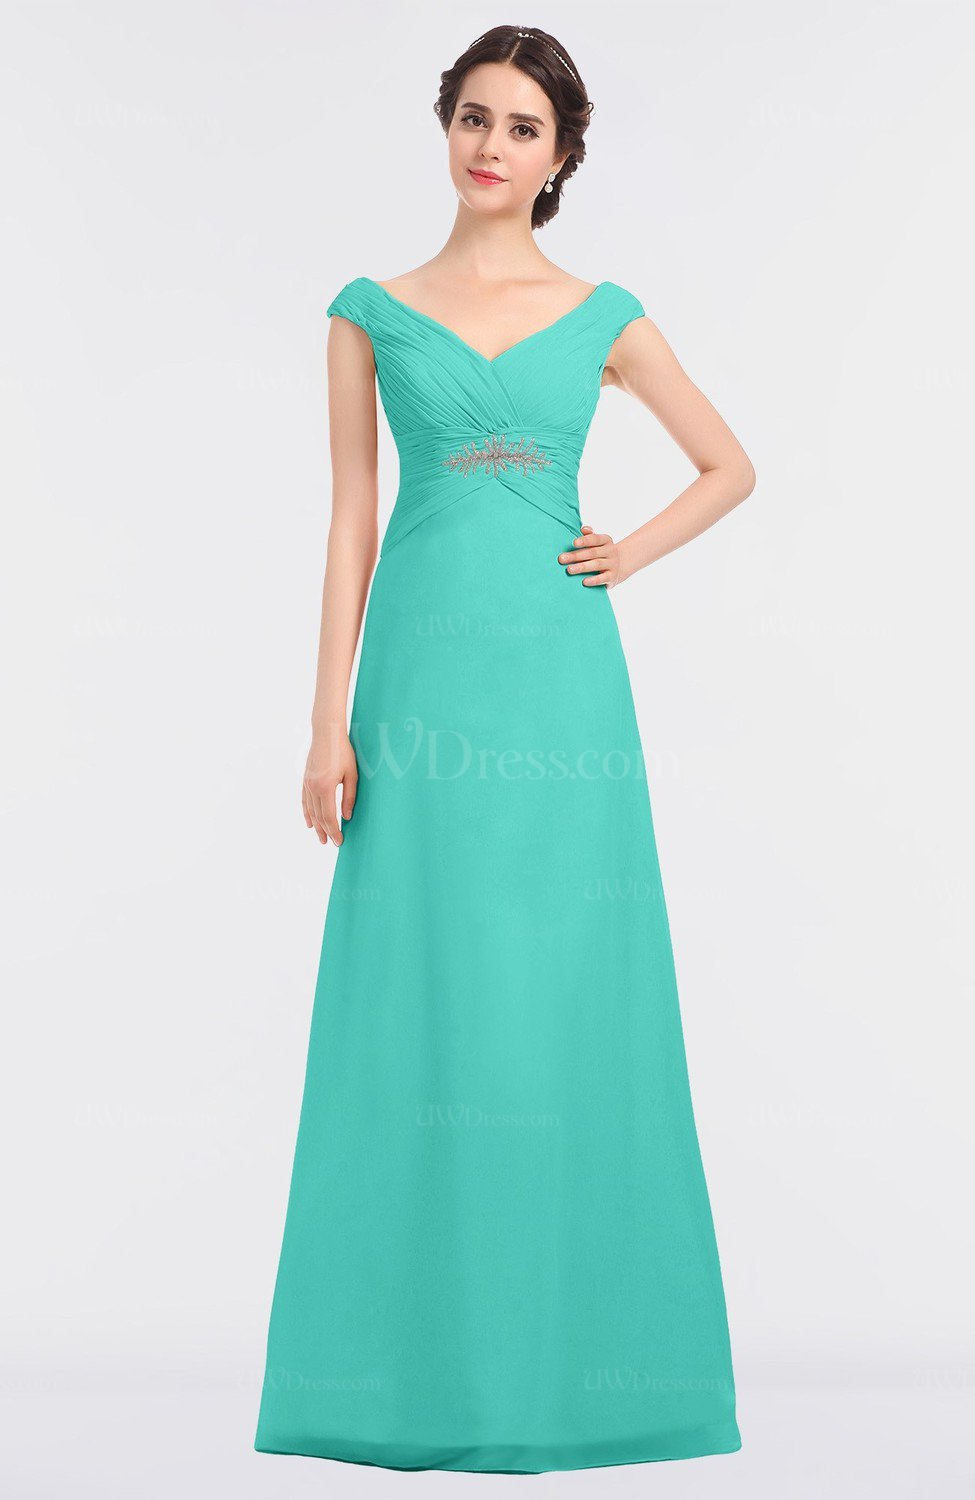 2018 Long Turquoise Bridesmaid Dresses one shoulder Cross